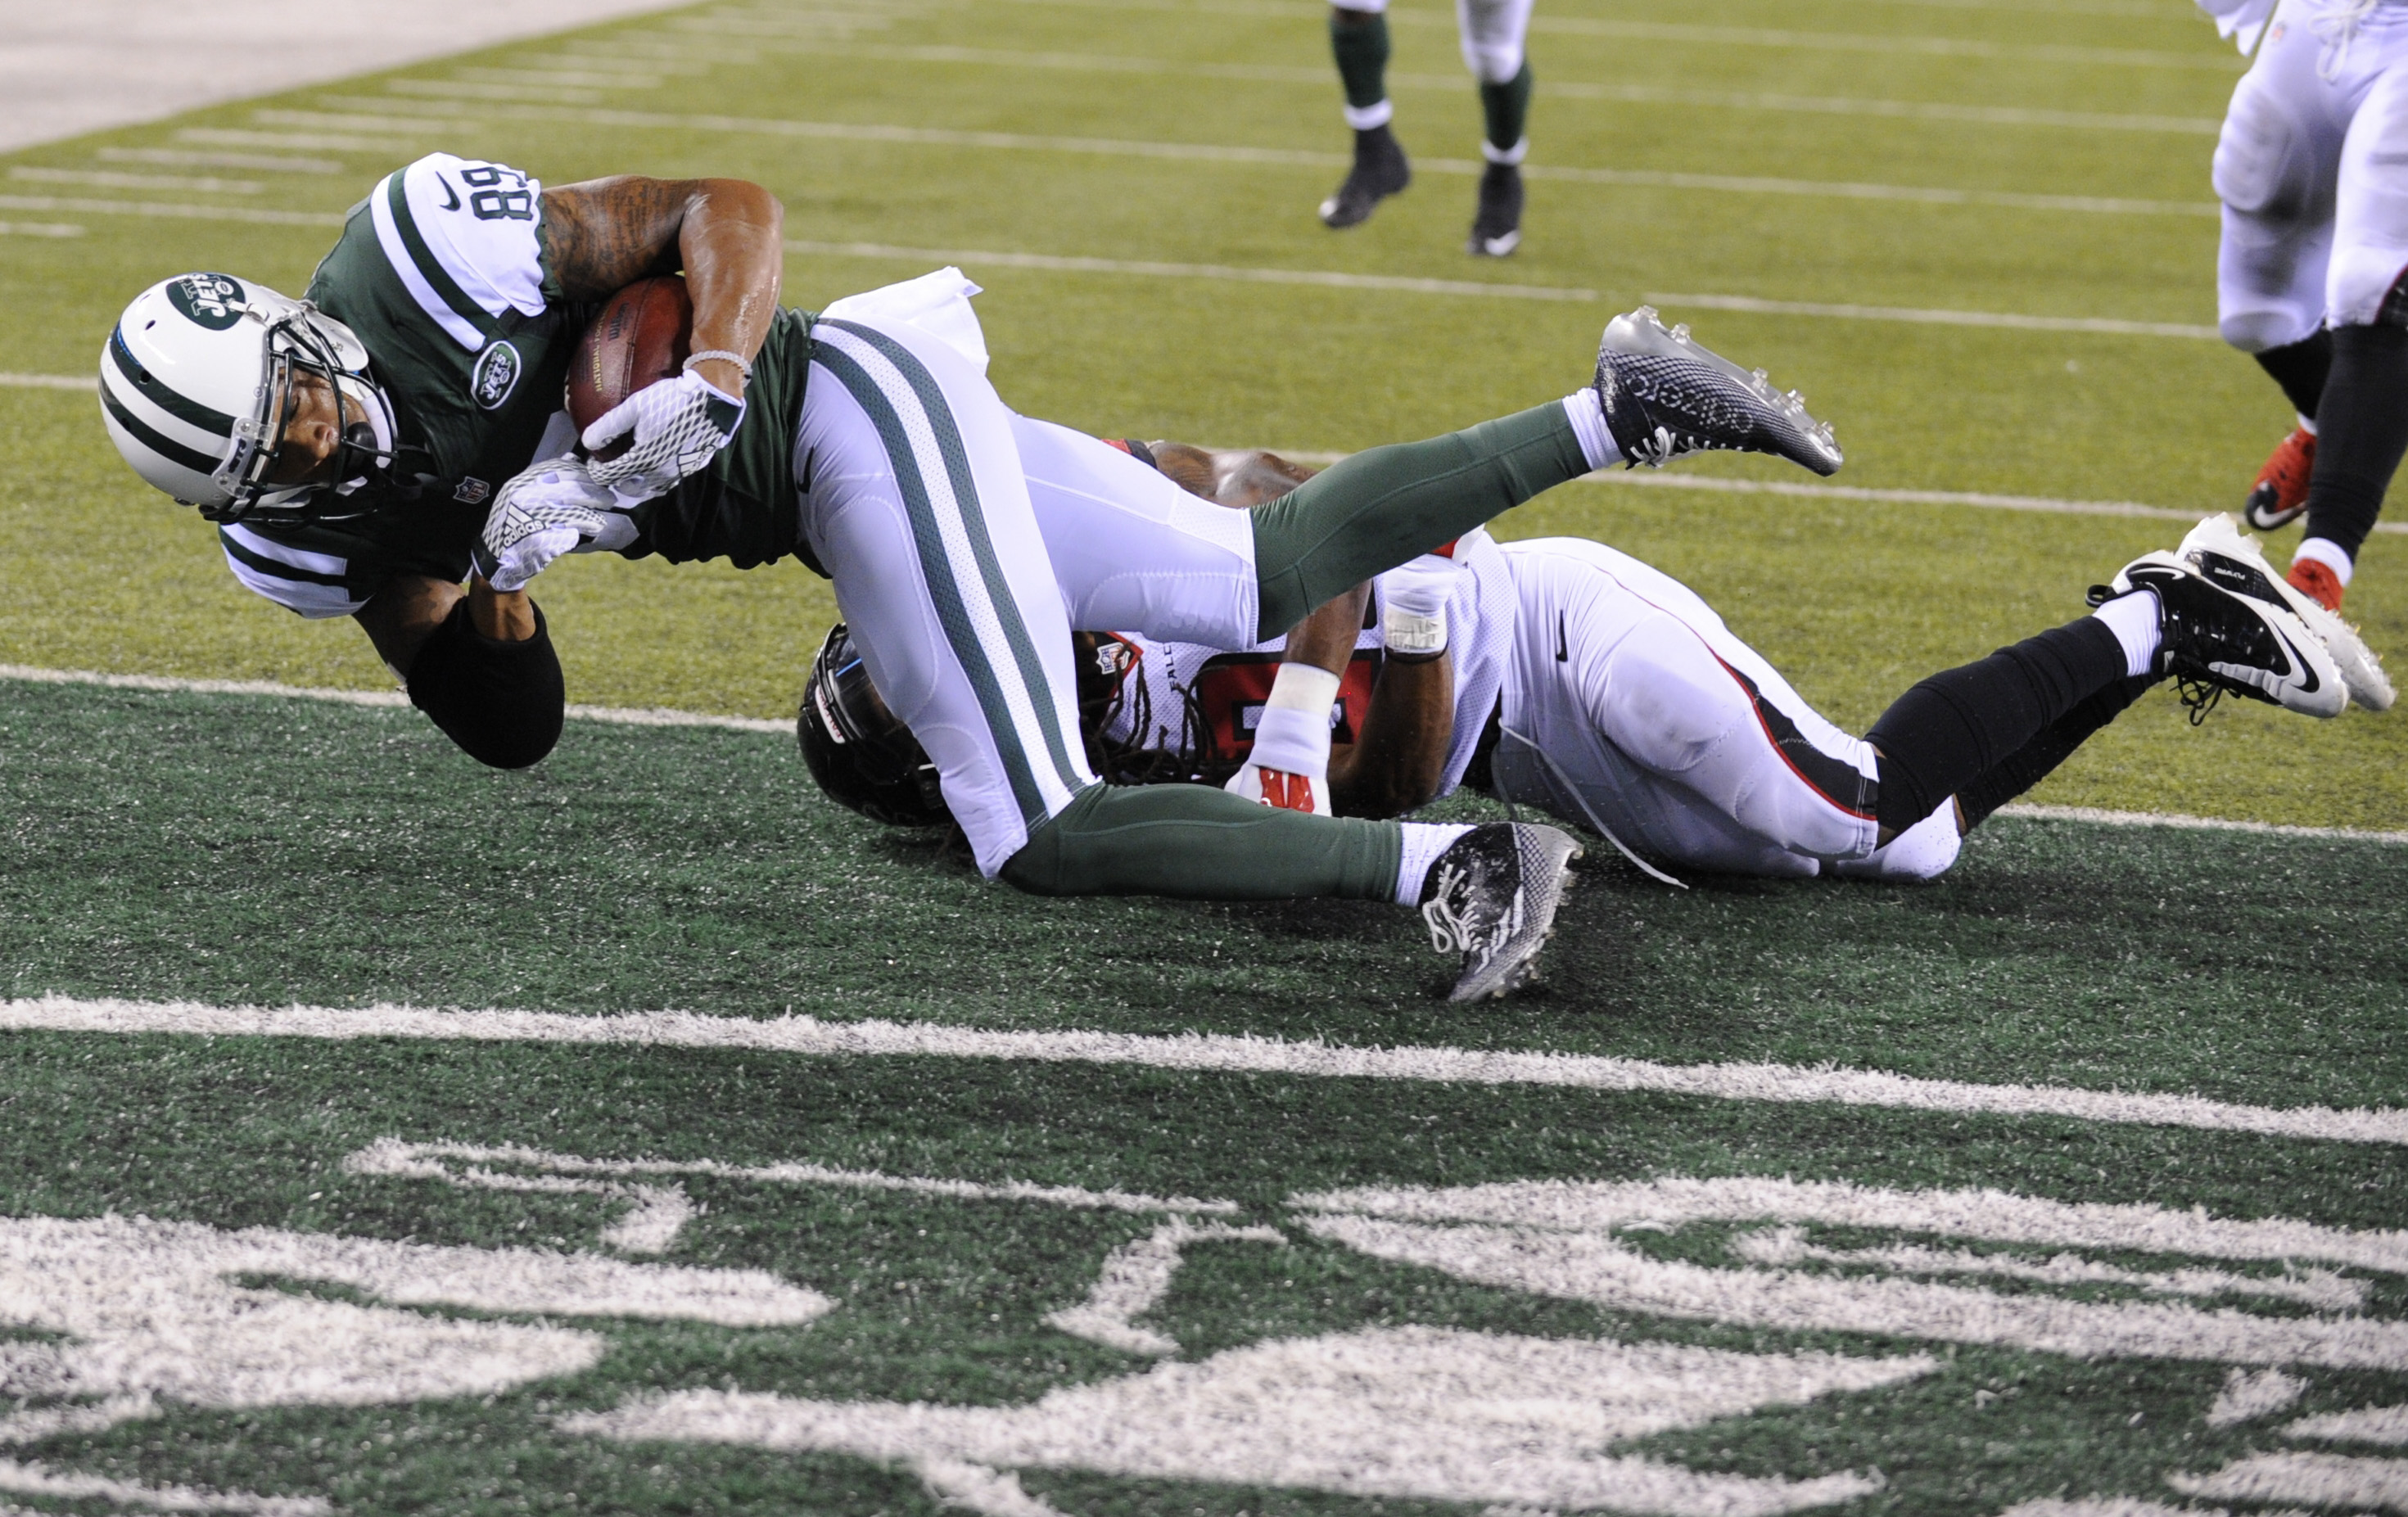 New York Jets wide receiver DeVier Posey (89) catches a pass for a touchdown as Atlanta Falcons' Dezmen Southward (22) defends during the second half of a preseason NFL football game Friday, Aug. 21, 2015, in East Rutherford, N.J. (AP Photo/Bill Kostroun)